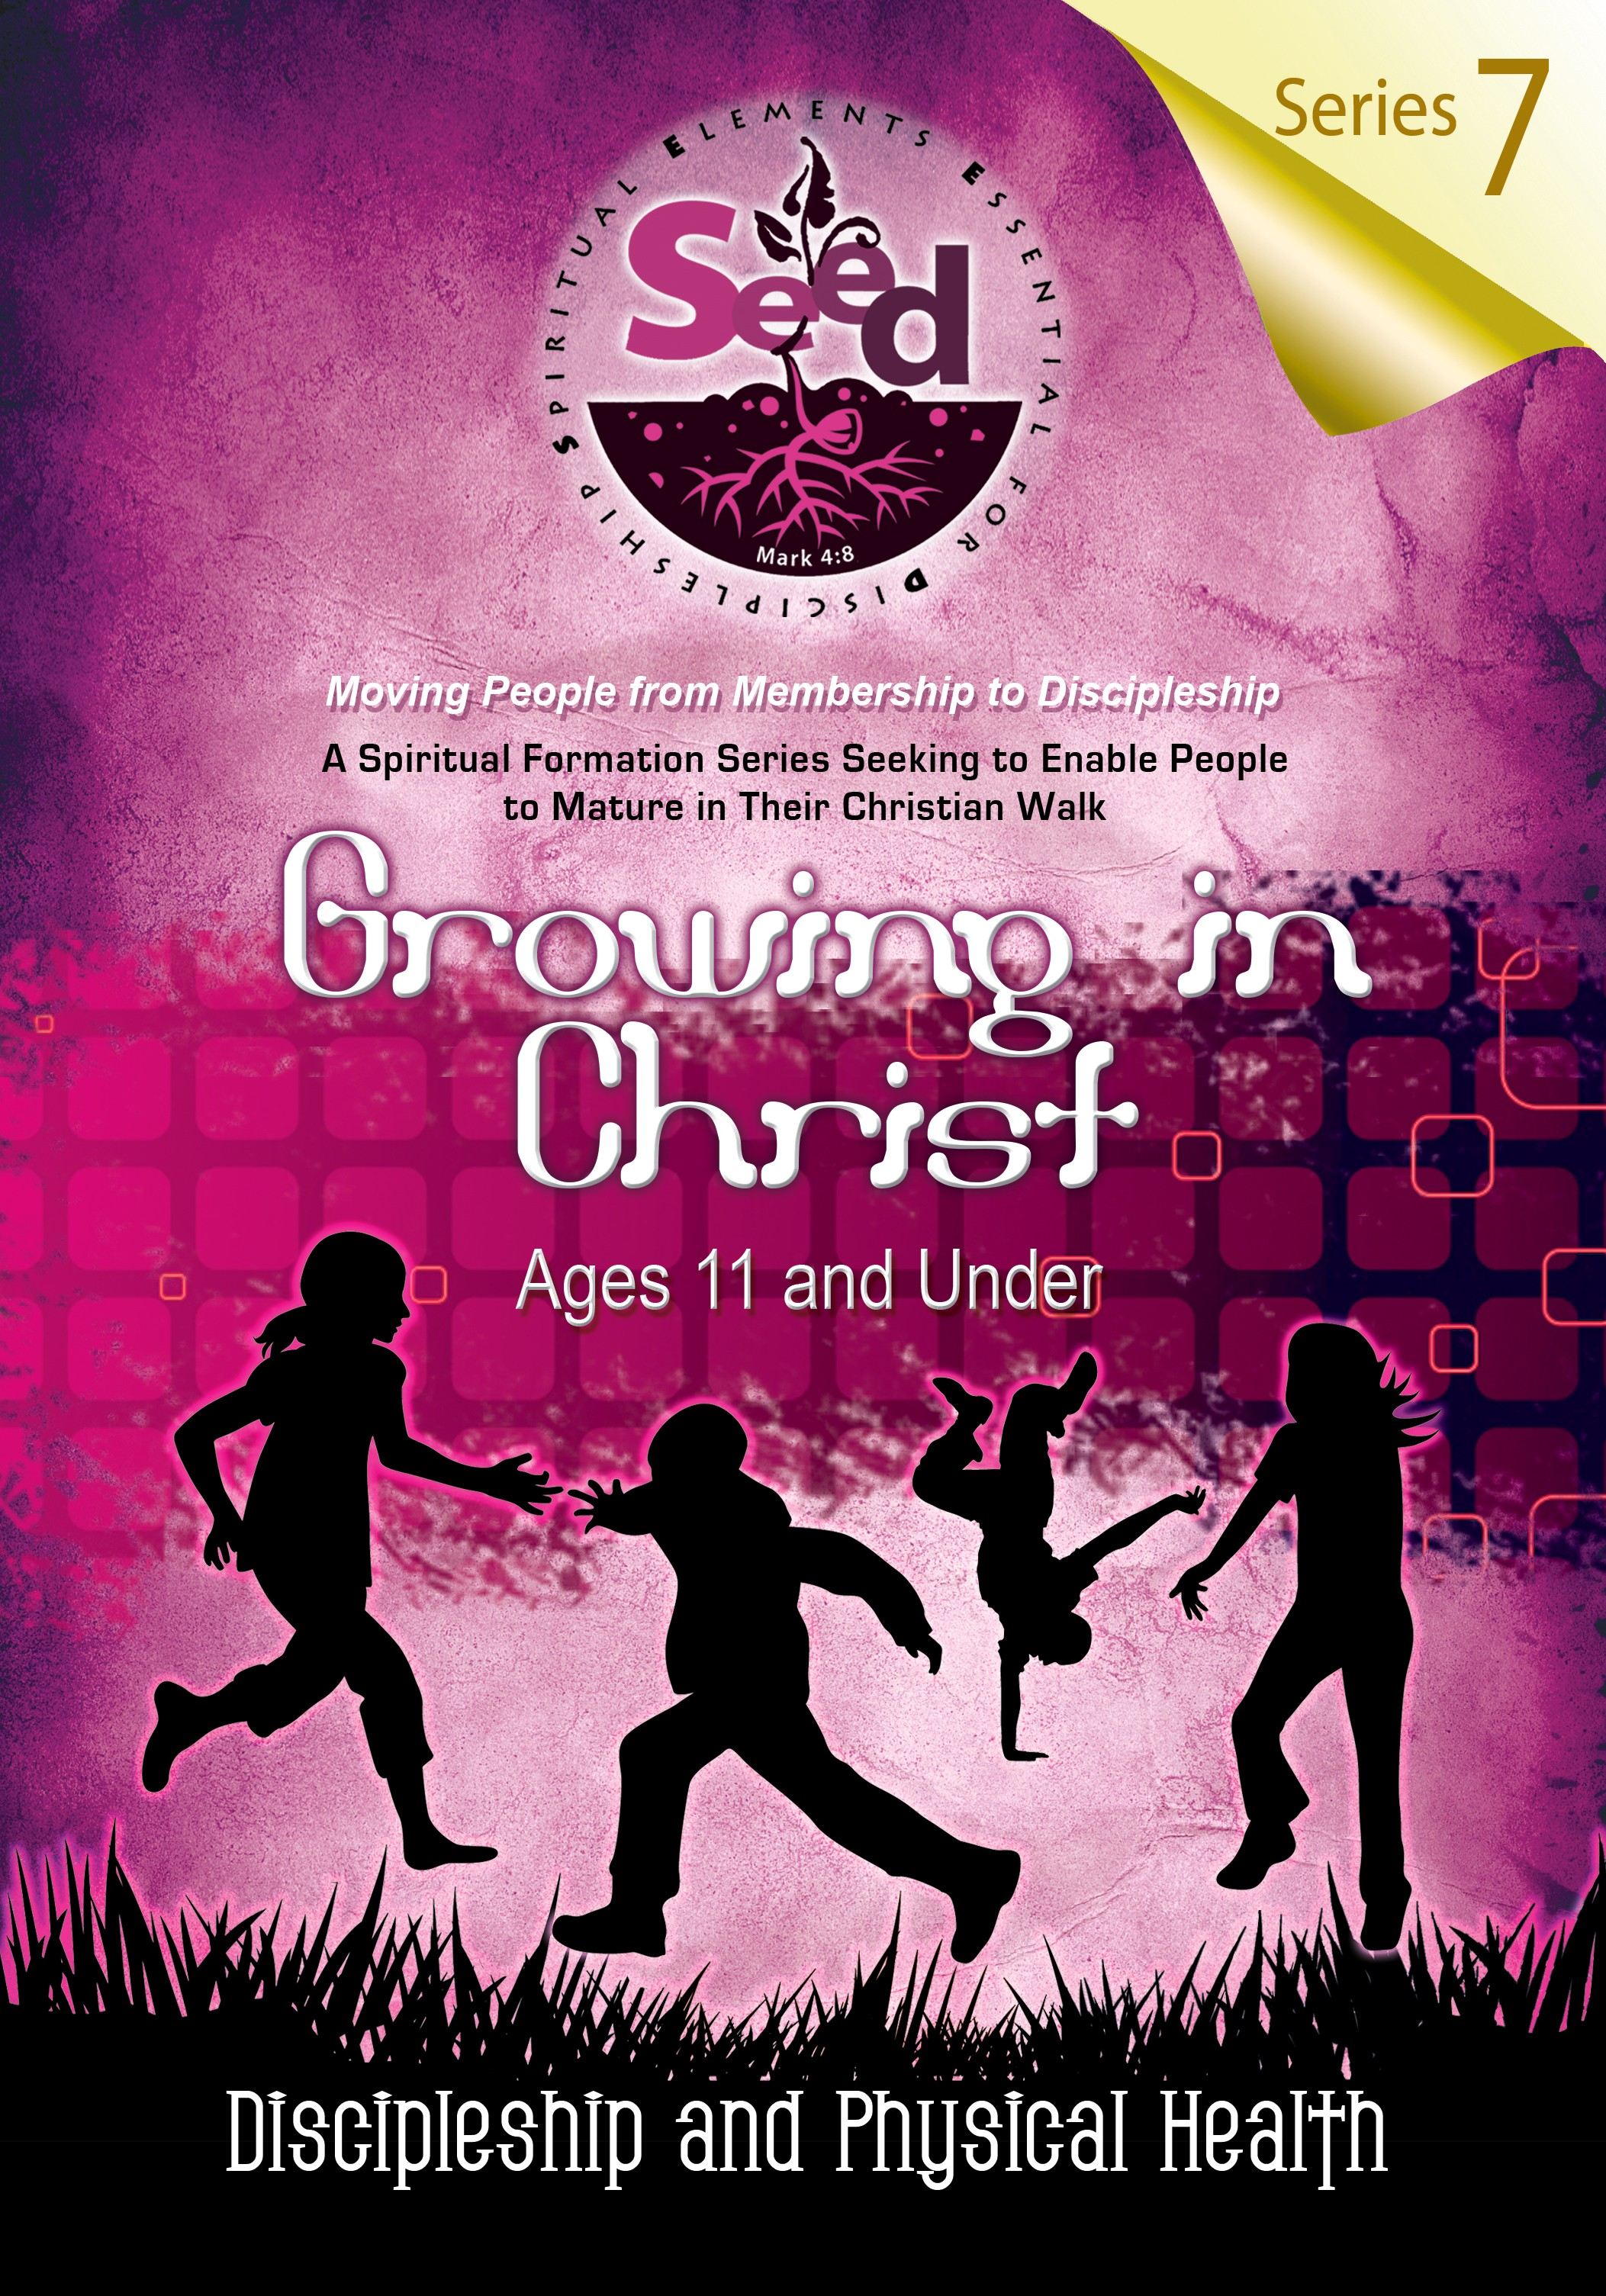 SEED Growing in Christ (Ages 11 and Under): Series 7: Discipleship and Physical Stewardship